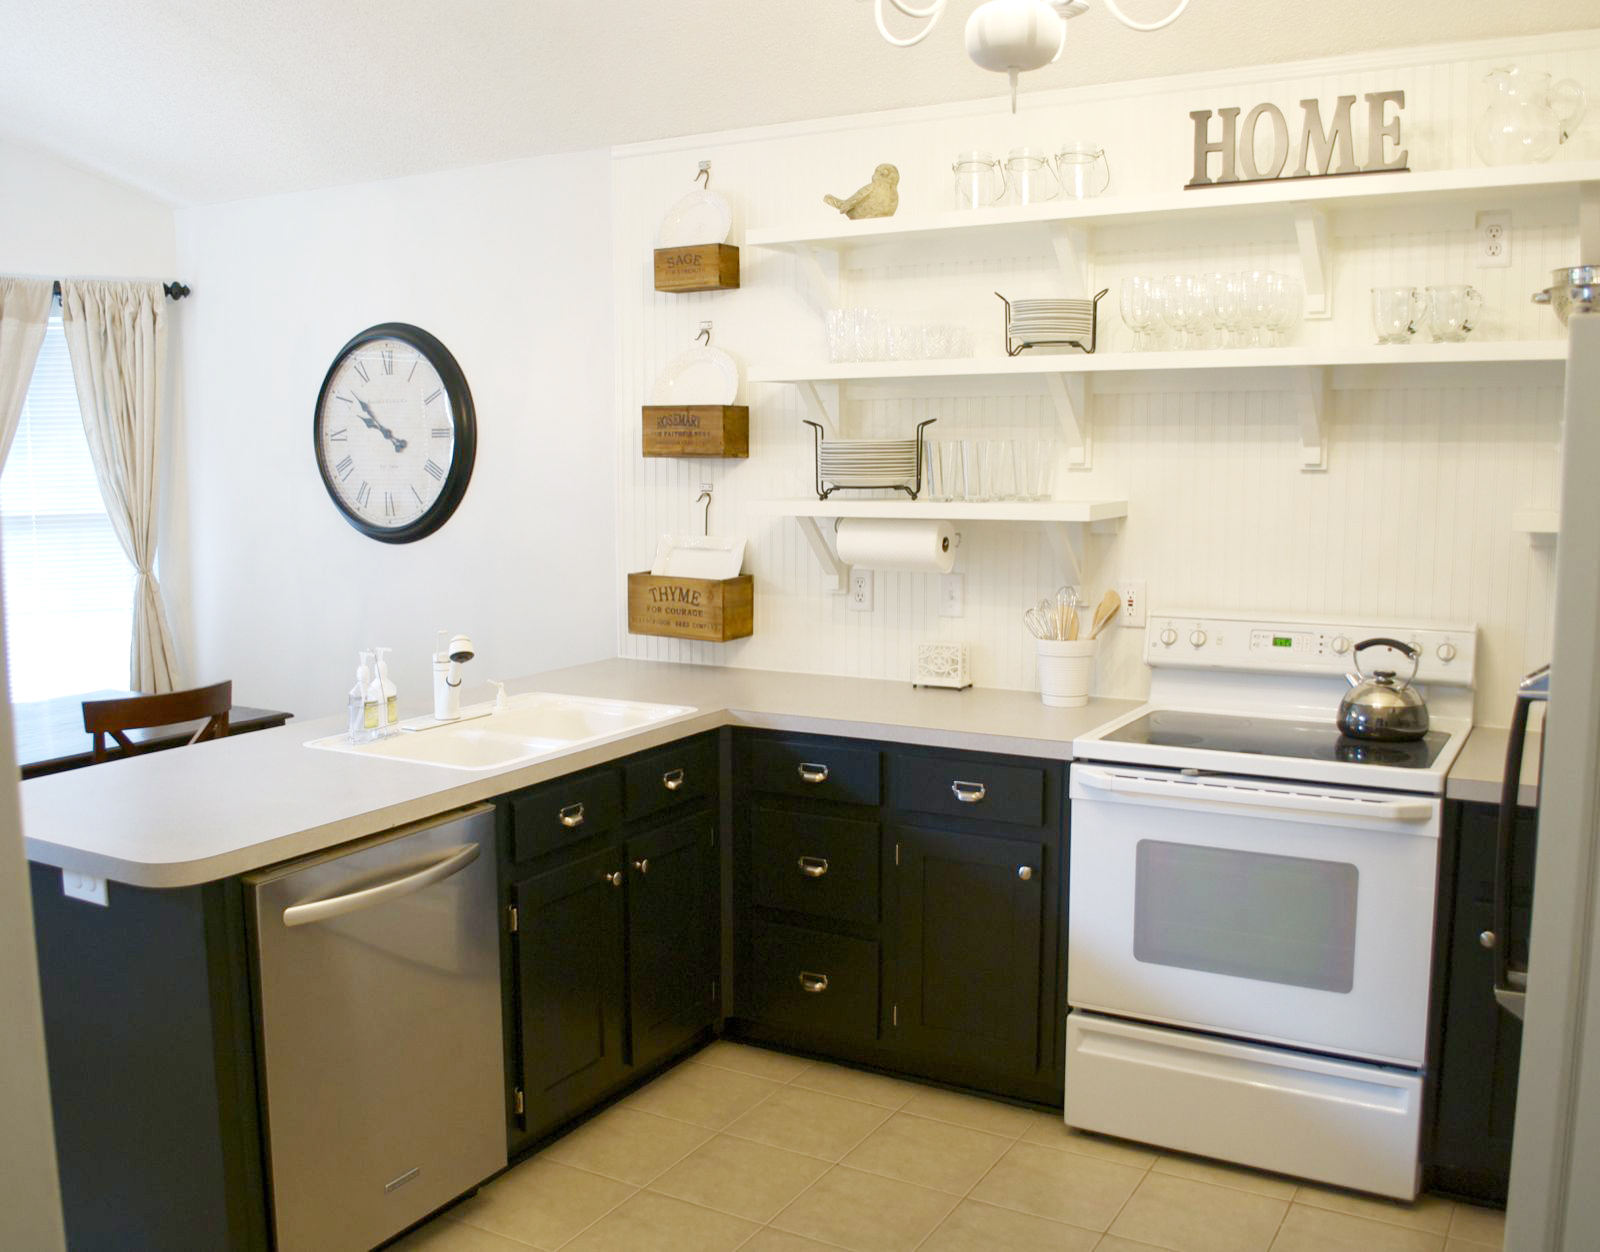 How To Have Open Shelving In Your Kitchen Without Daily: Kitchen Remodel, Removing Upper Cabinets